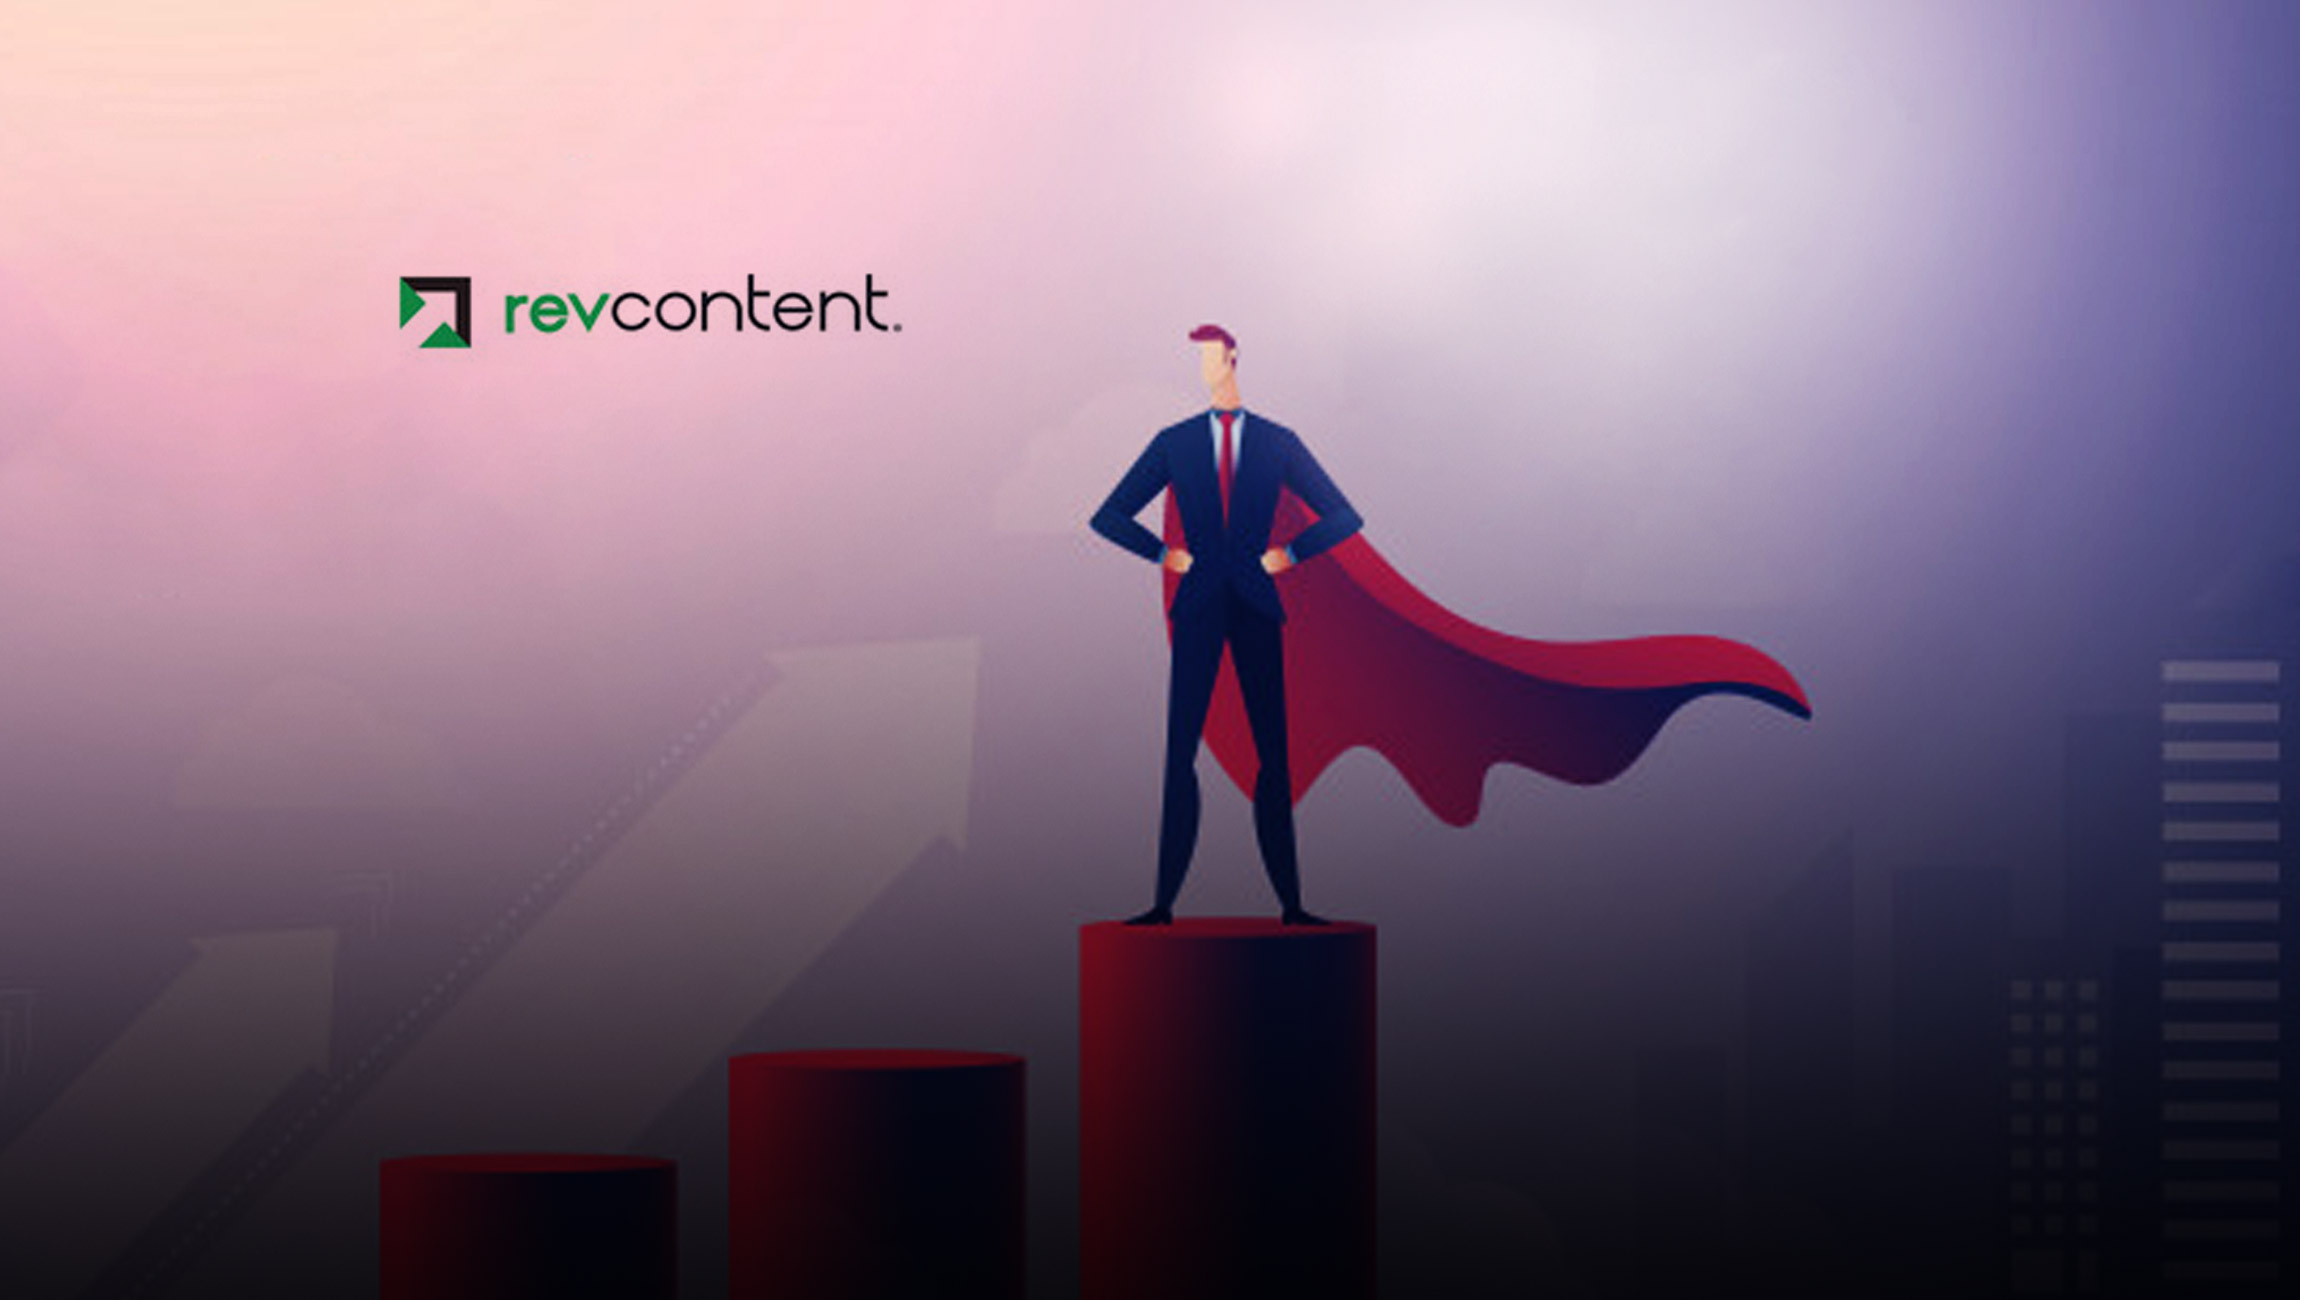 Revcontent Sees 1,100% Increase in Profitability, Bolsters Client Roster and Product Offerings Under New Leadership